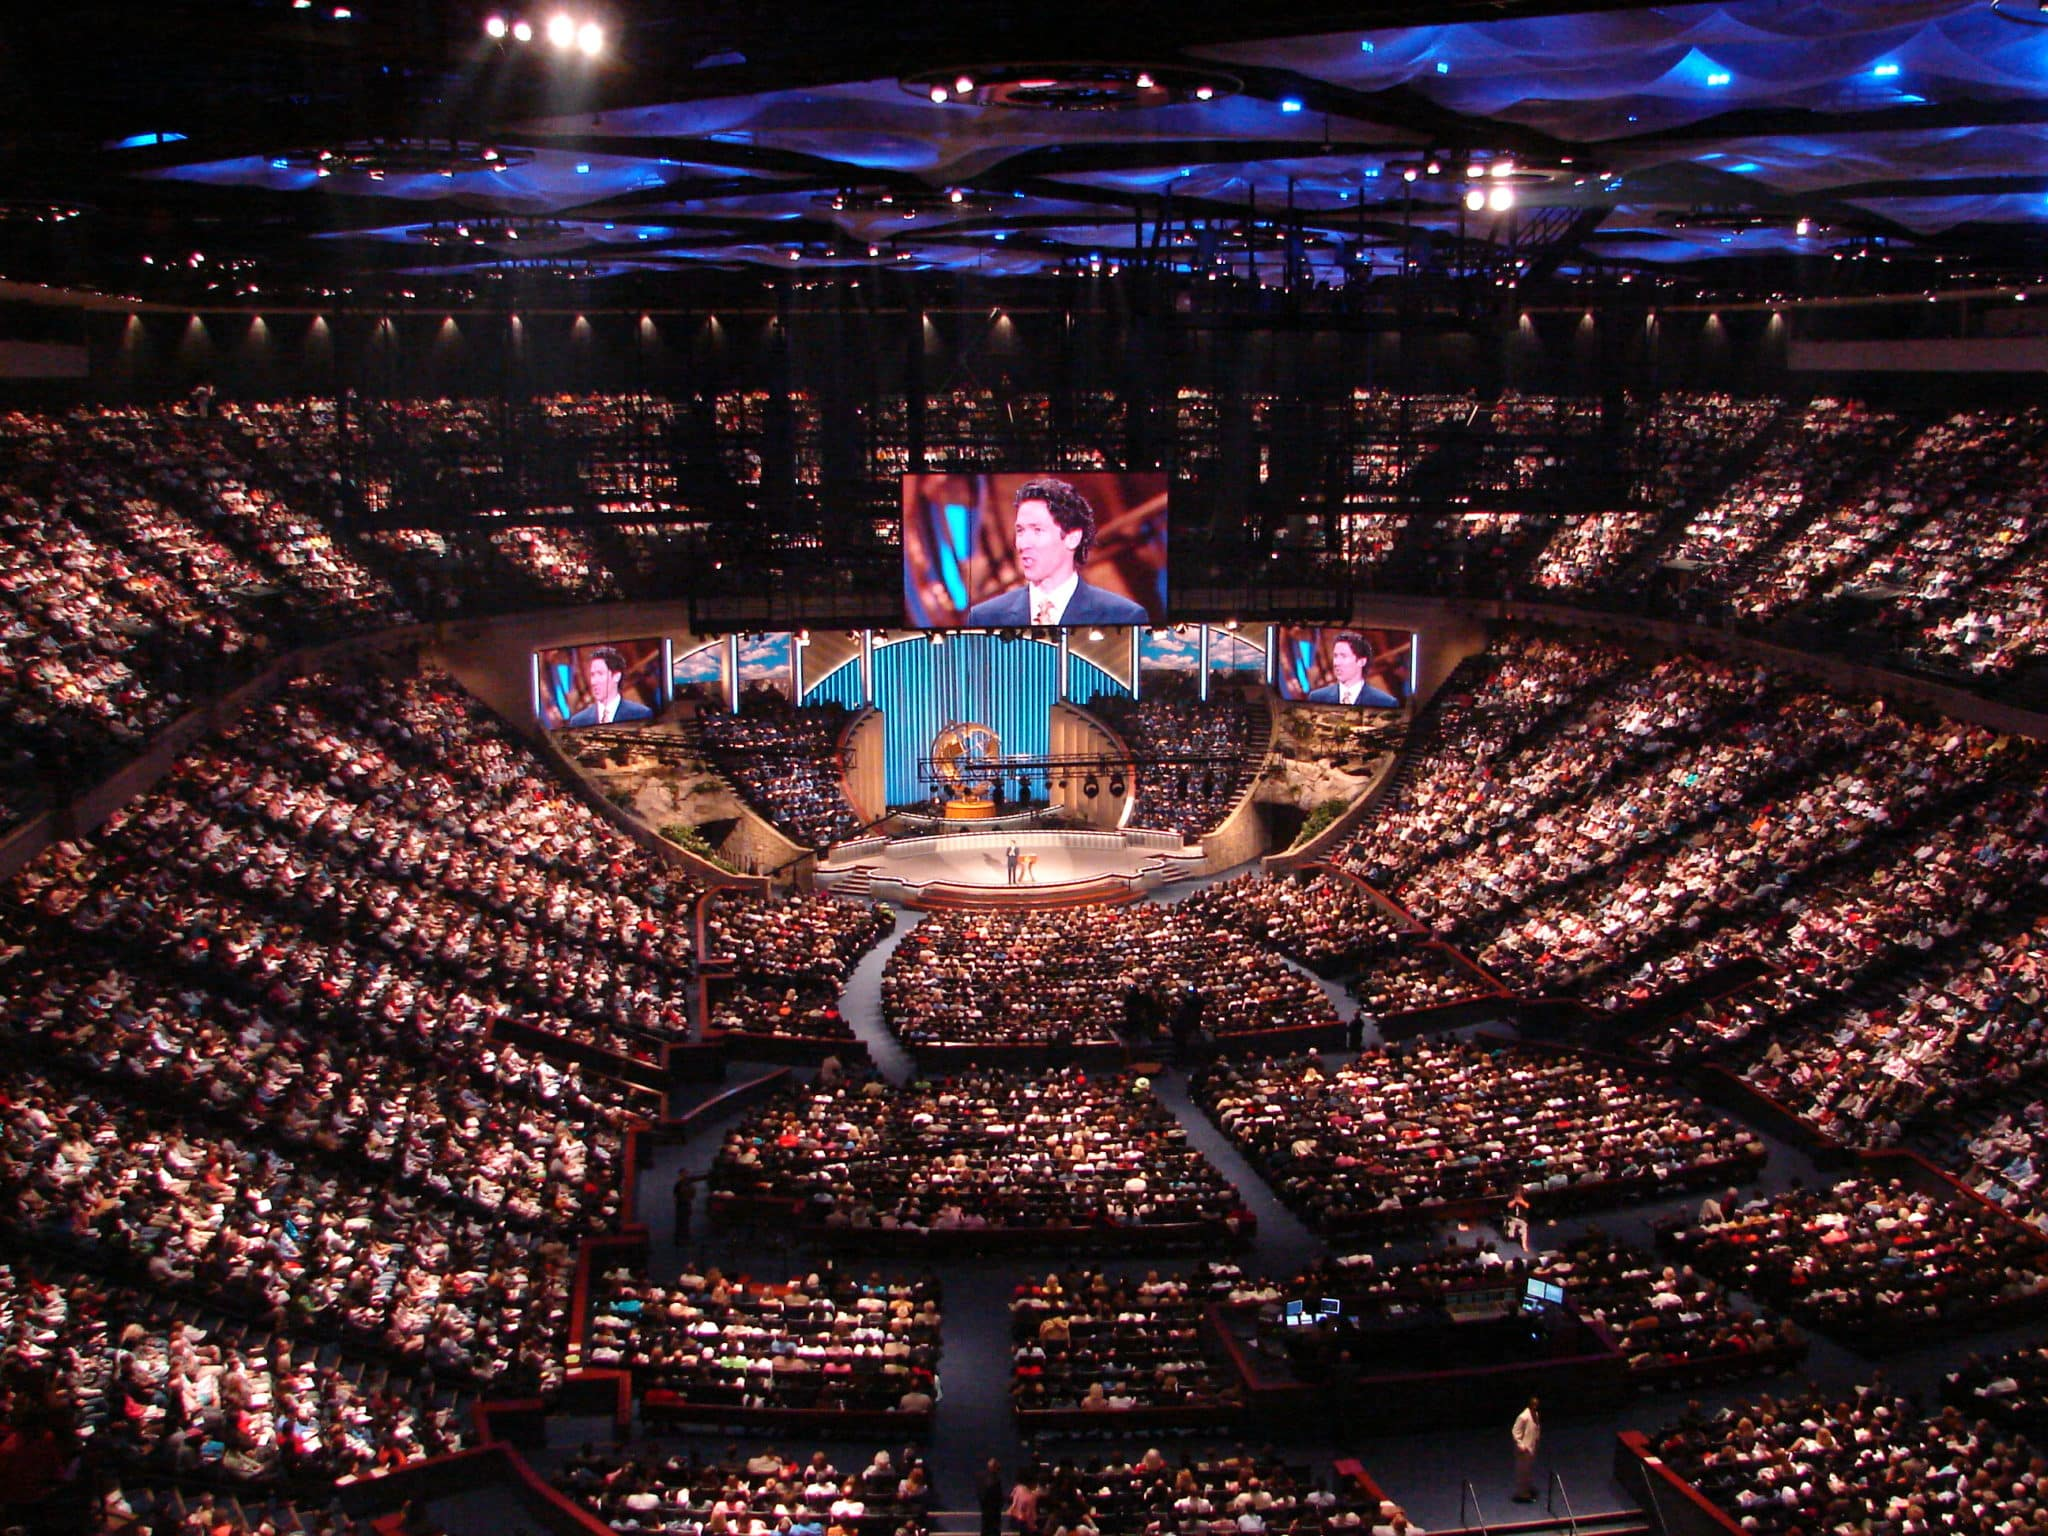 Image result for images of megachurch service